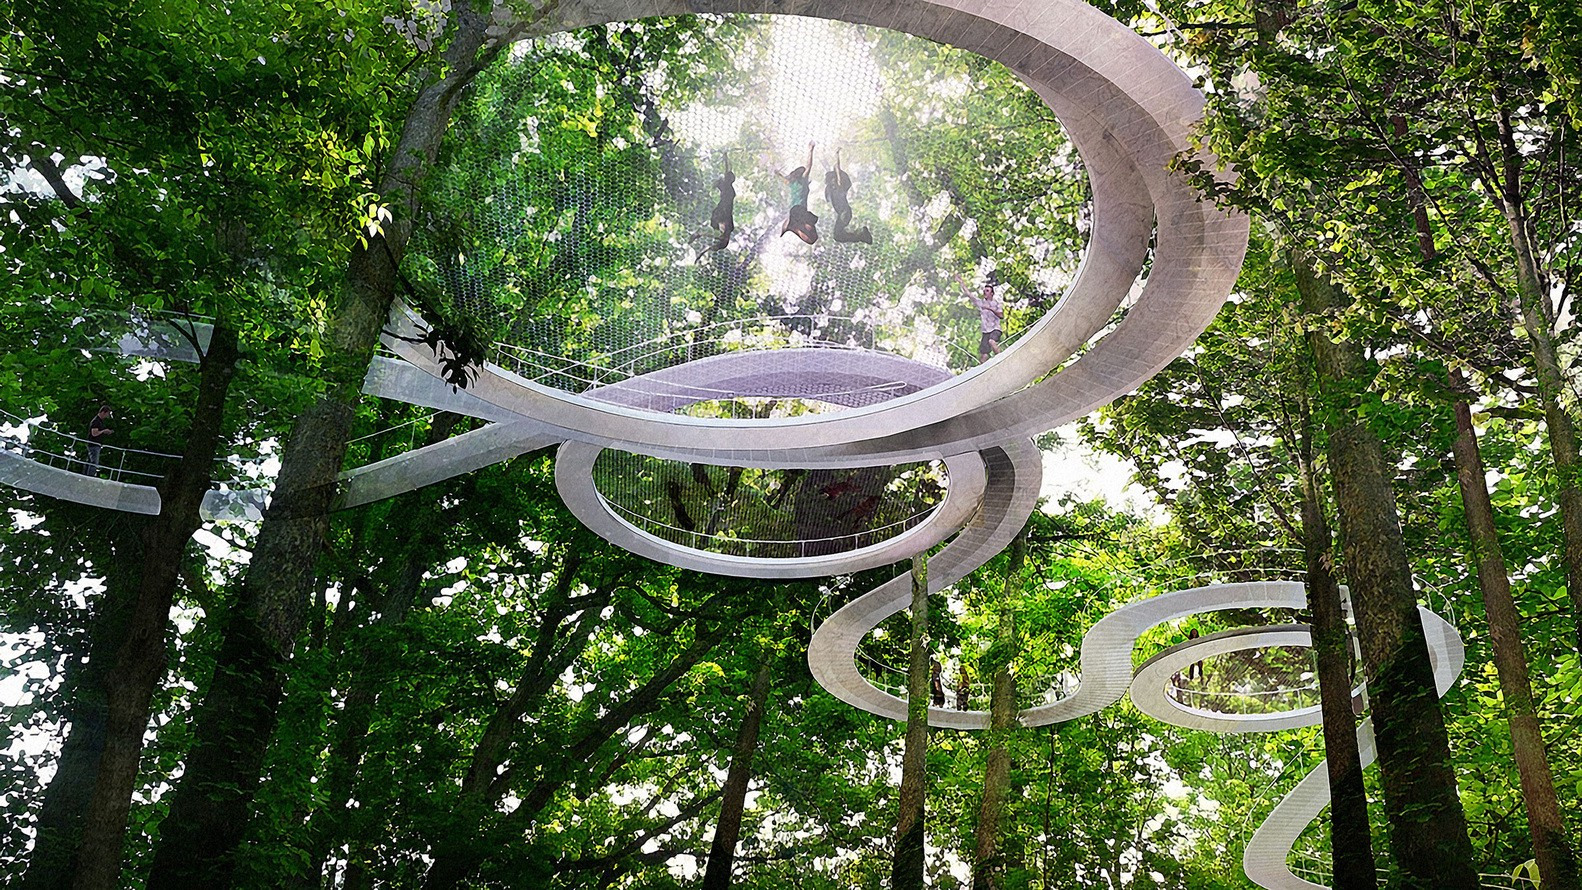 This is the Coolest Idea for a Park I have ever seen in my life.